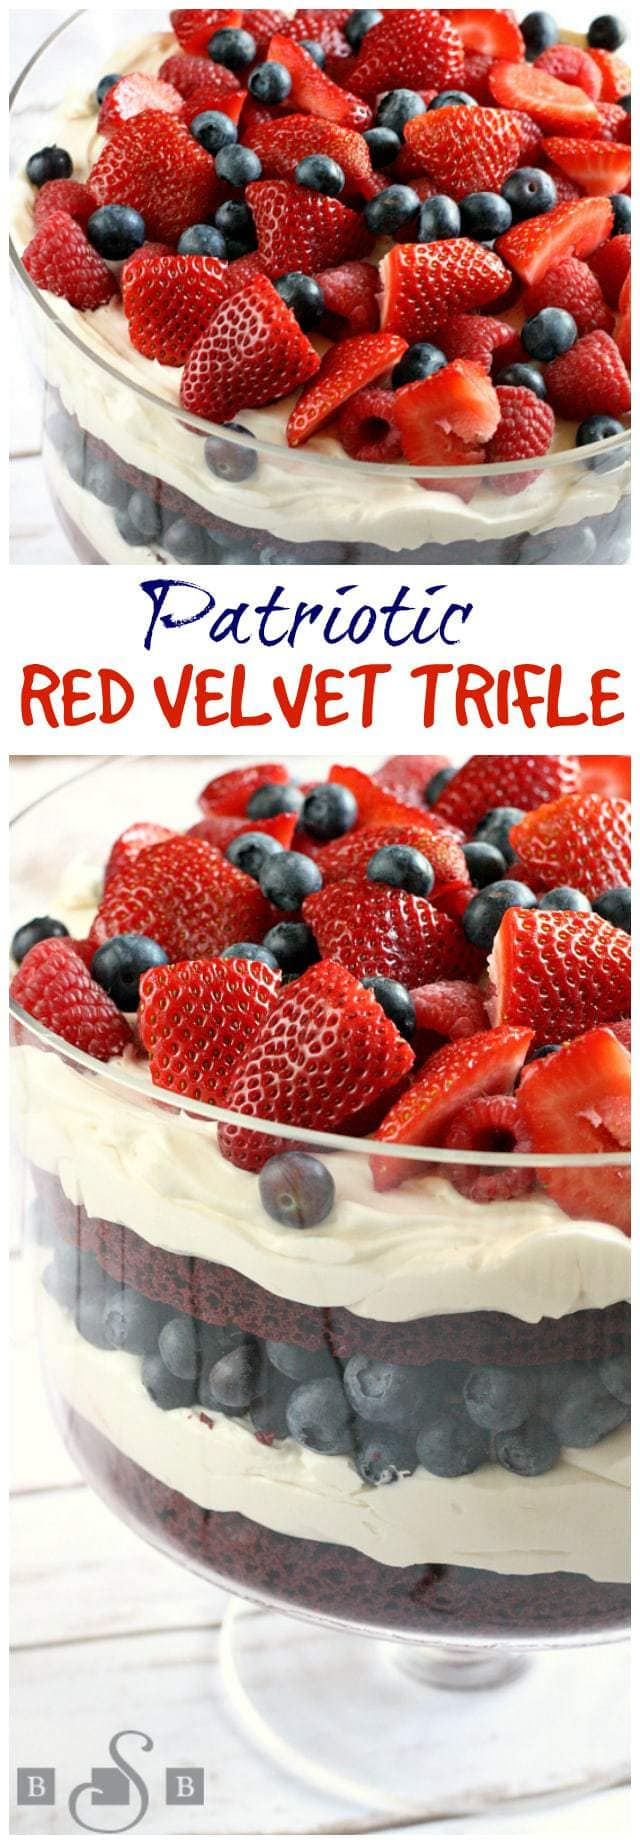 I love making trifles because they look so fancy, but they are so easy to put together! I had never made one with red velvet cake before, but it is the perfect base for a patriotic dessert, especially when topped off with blueberries, raspberries and strawberries! I just used a boxed mix for the cake and it turned out to be an amazing dessert!